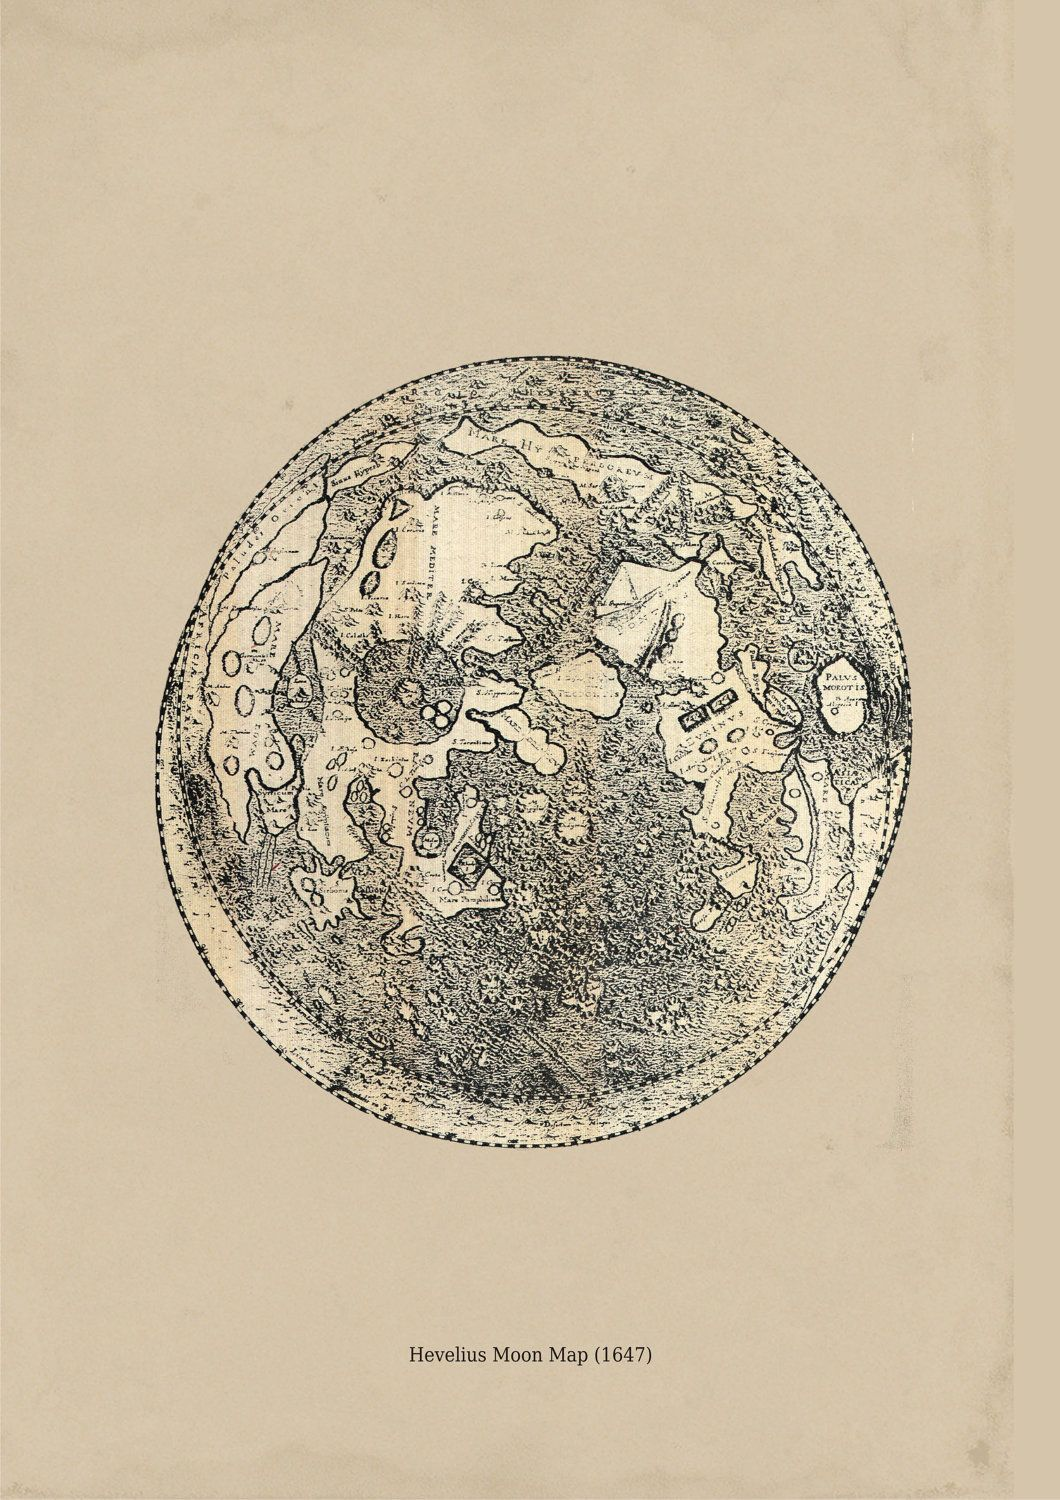 Hevelius Moon Map Astronomy Print Recovered Vintage Image to Frame on the malay archipelago map, the plate tectonics map, neptune map, jupiter map, the explorers map, the multiverse map, zombie moon map, the oceans map, moon world map, the wolf map, inside out map, the flag map, the divergent map, moon orbit map, the mountains map, mars map, charles manson map, the animal map, the doom map, earth's moon crater map,